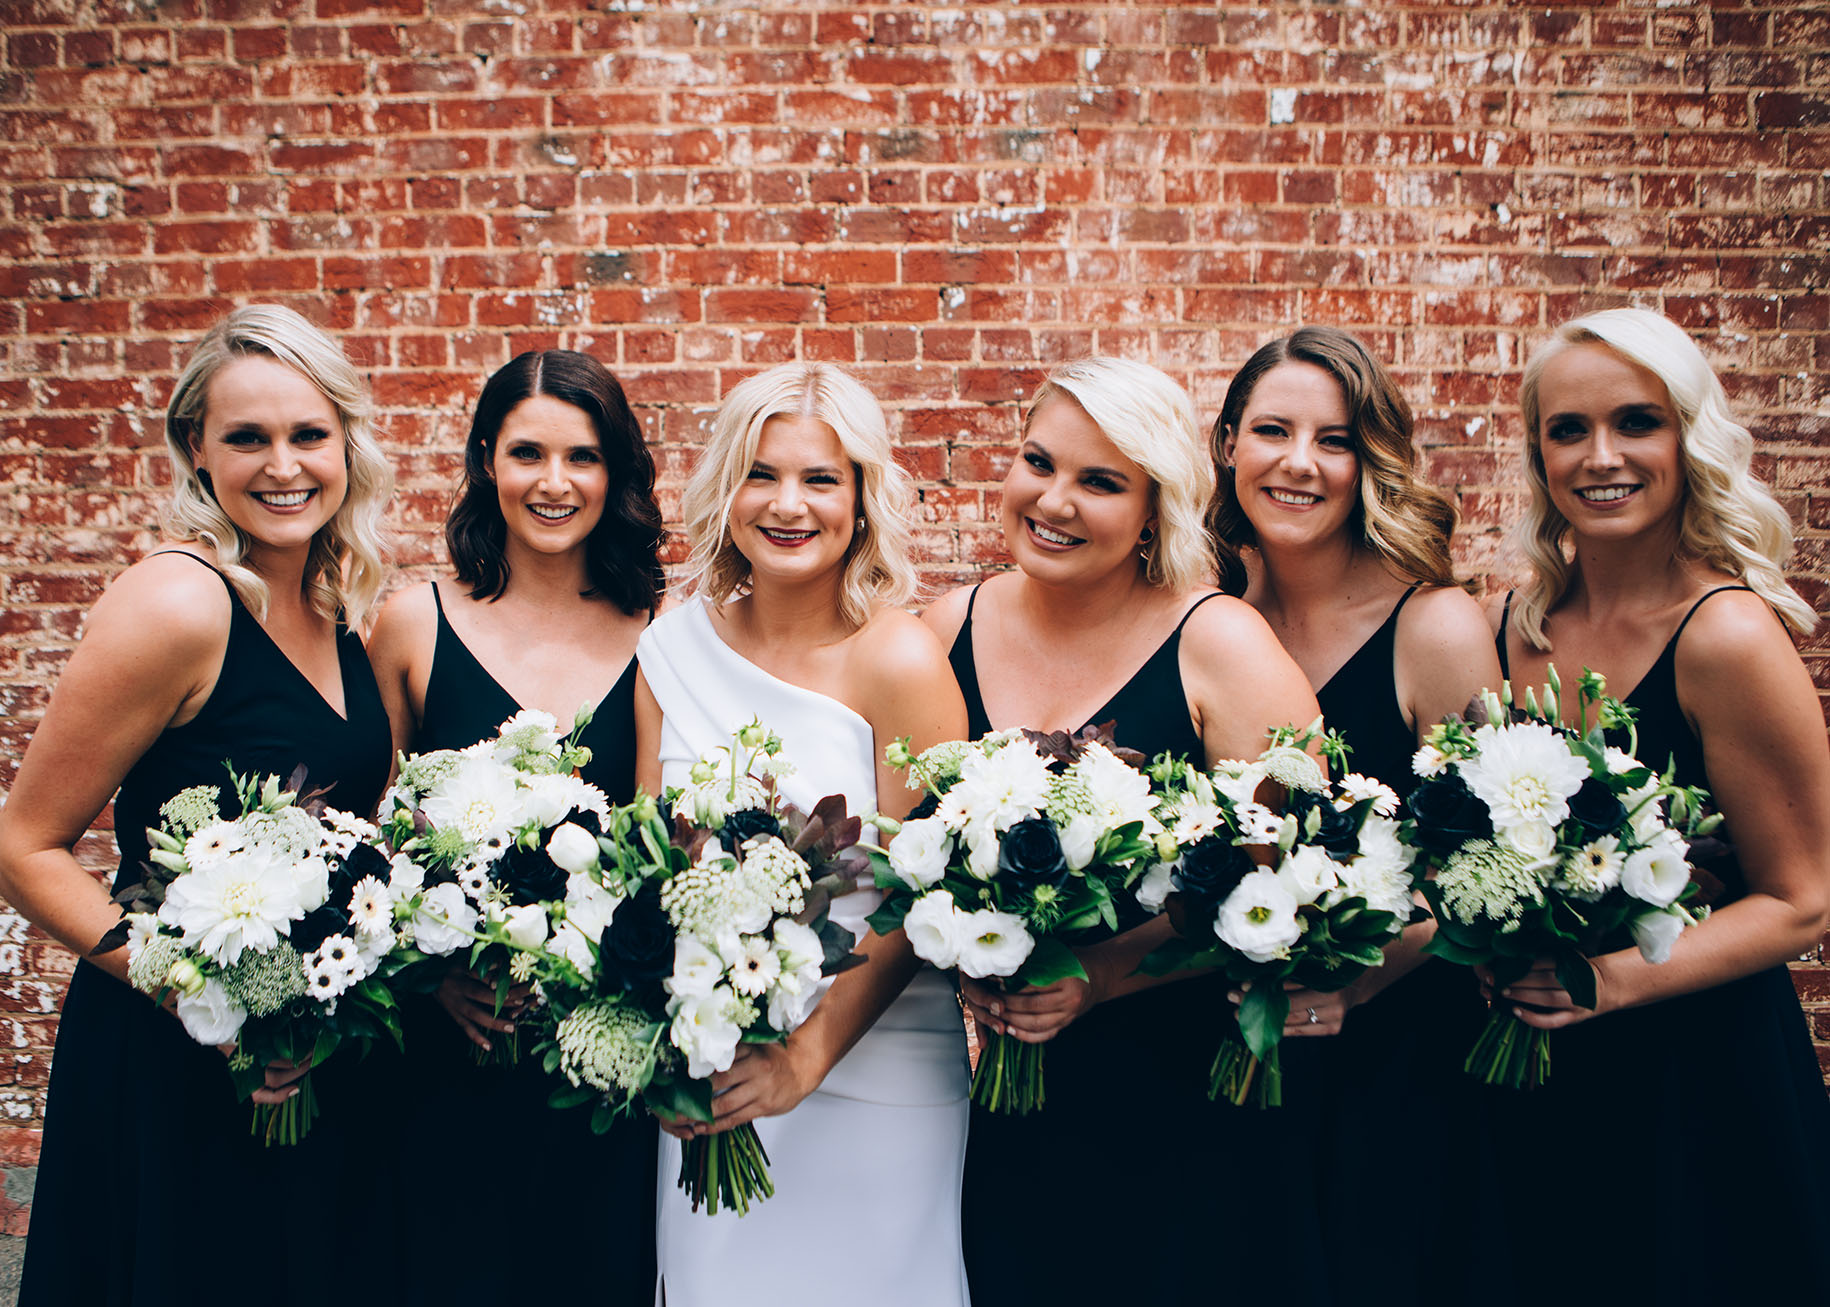 Average Cost Of Bridesmaids Bouquet 2019